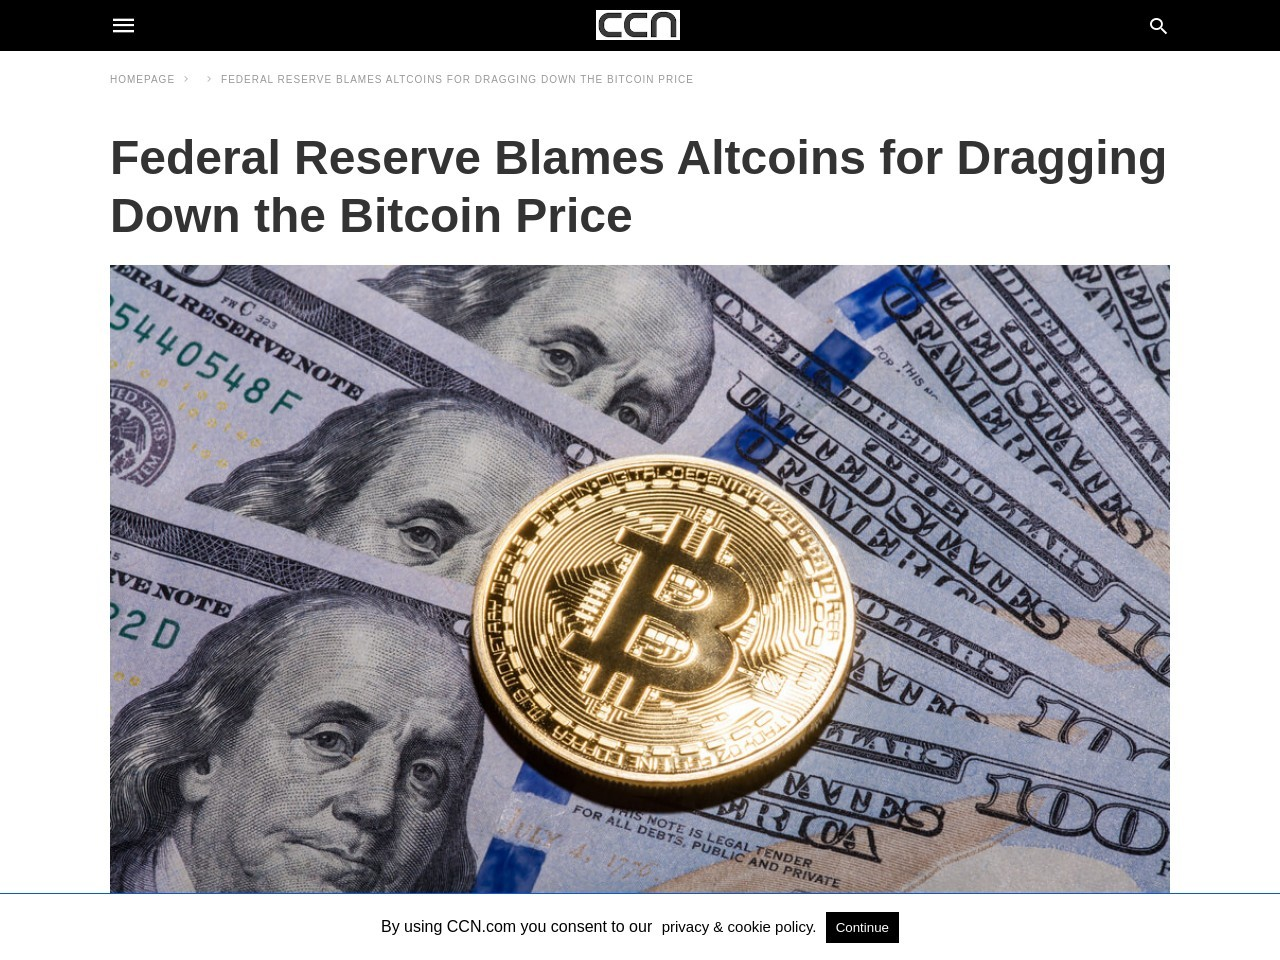 Federal Reserve Blames Altcoins for Dragging Down the Bitcoin Price